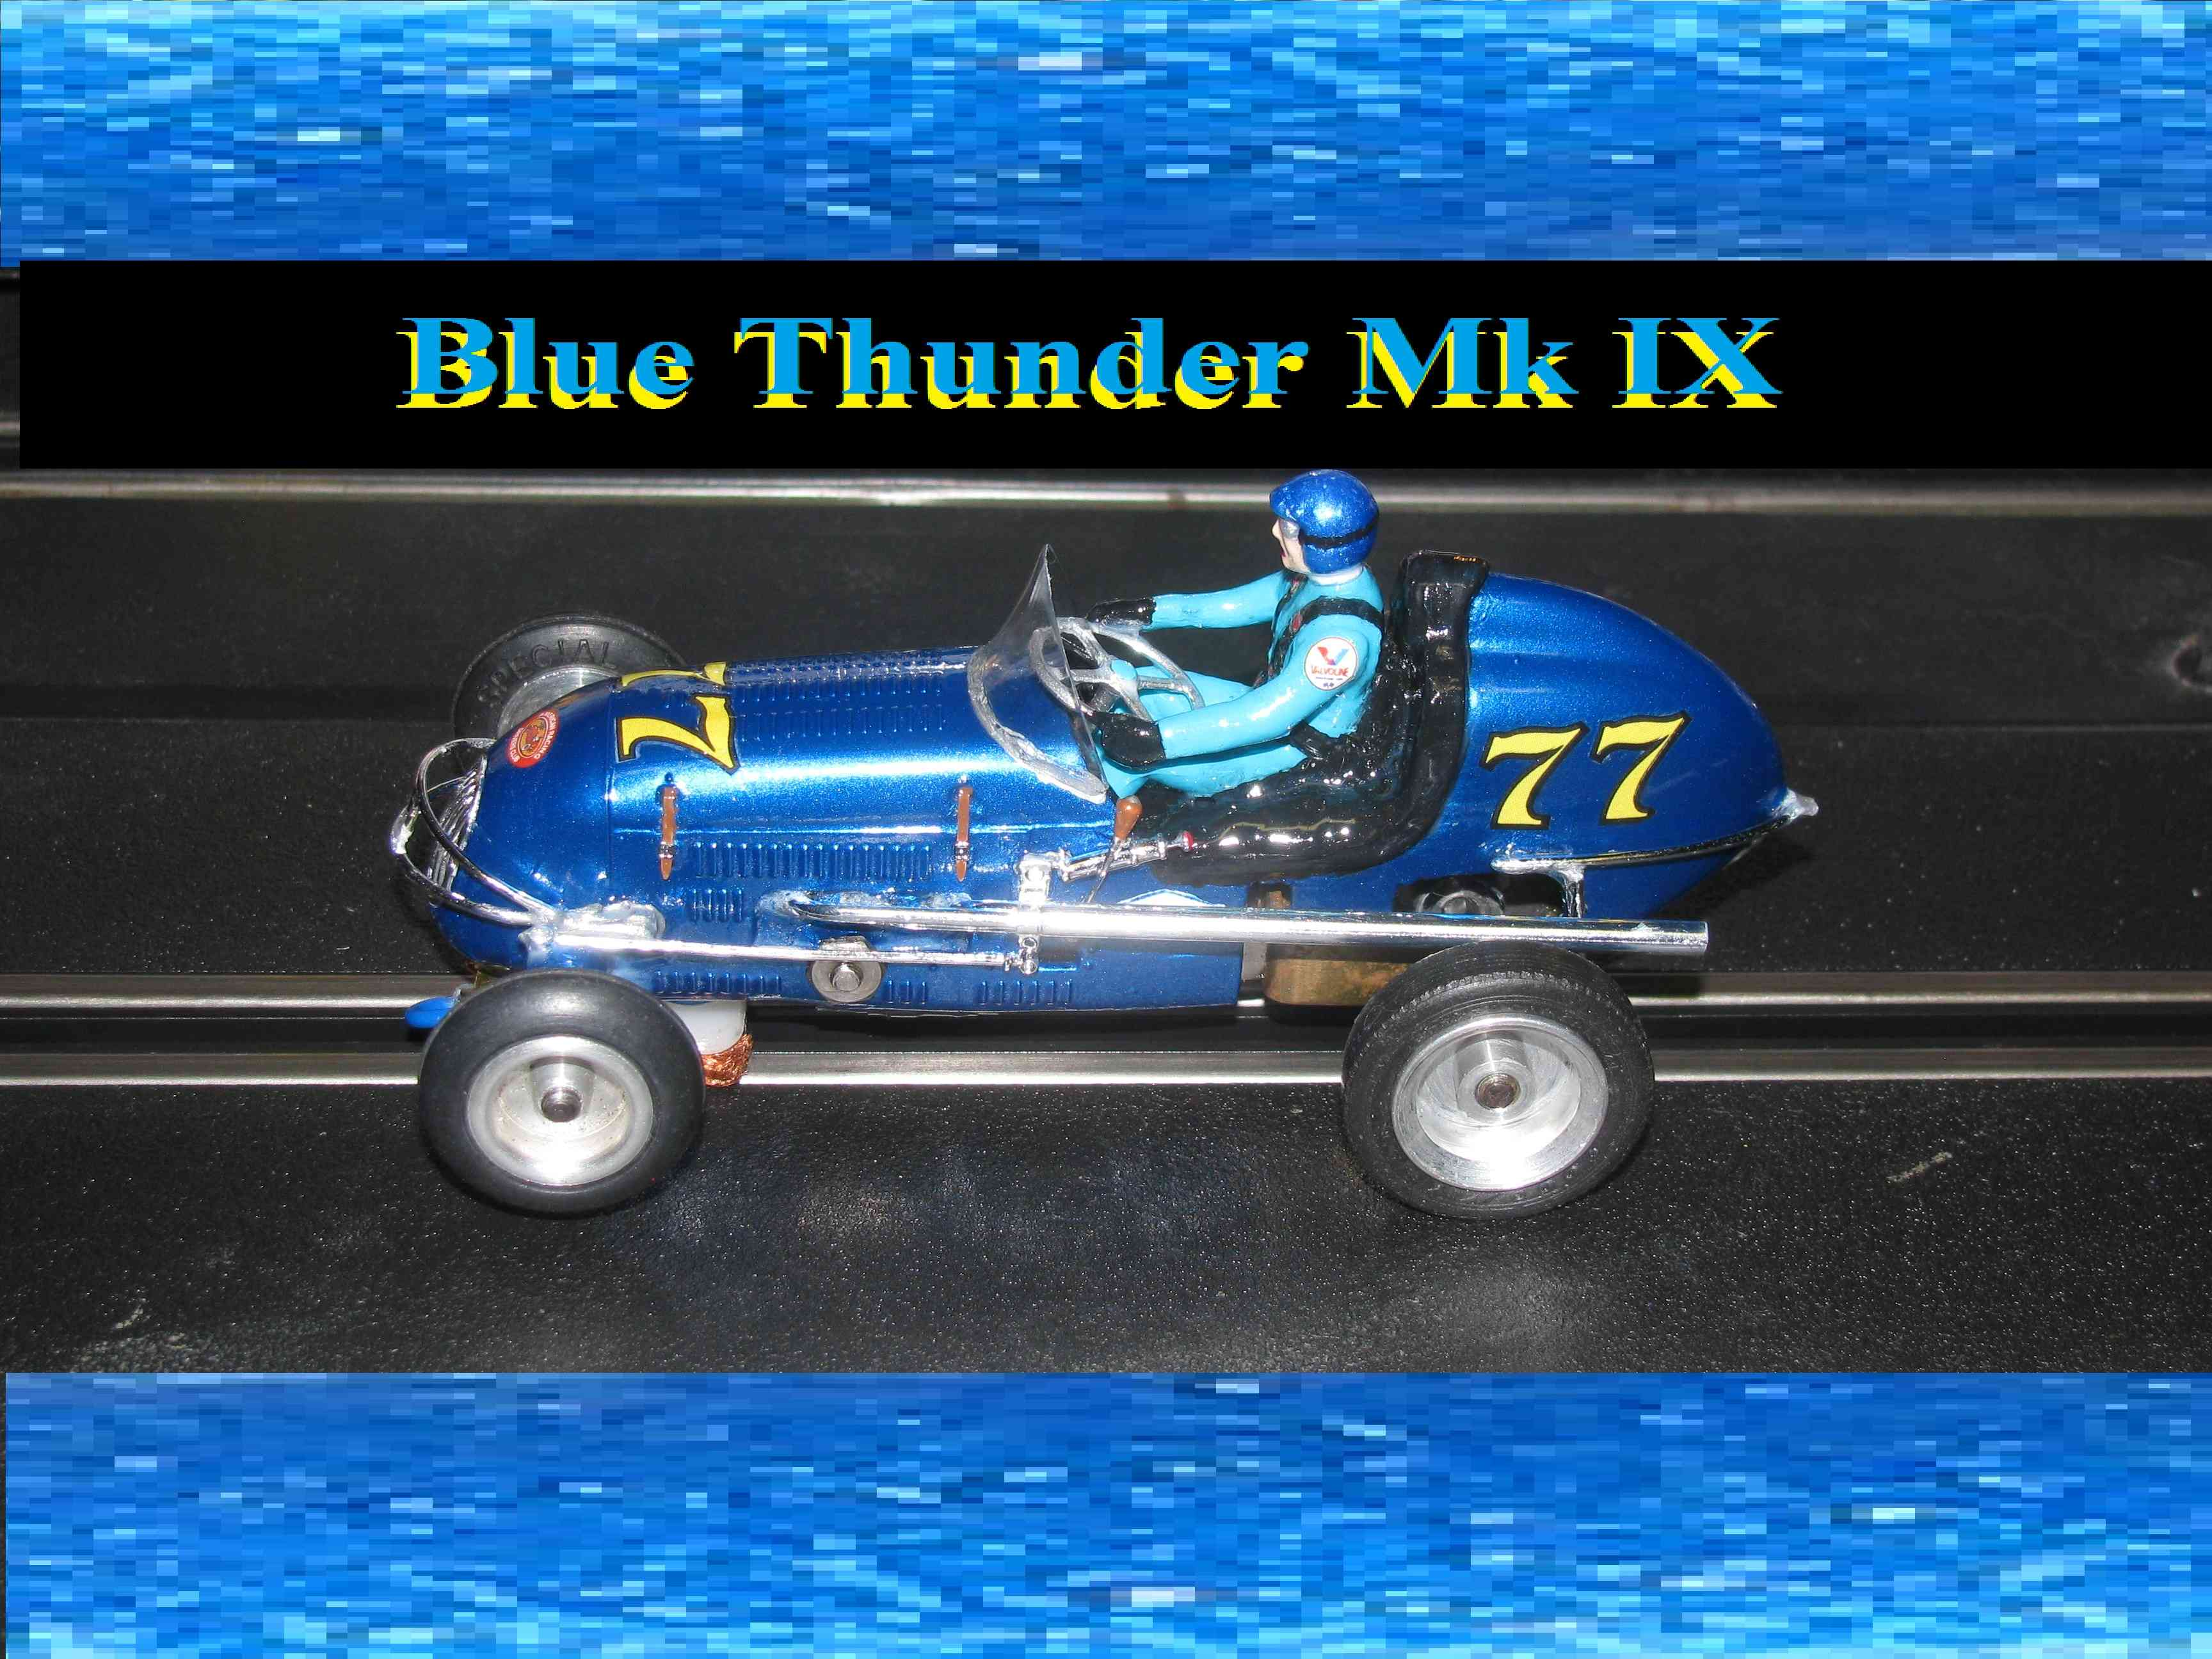 *SOLD* * Custom order for Charles E. ONLY $299 * *SALE $349.99, Reg, $449.99, SAVE $100* Revell Midget Racer Blue Thunder Mk IX Racing Special 1:32 Scale